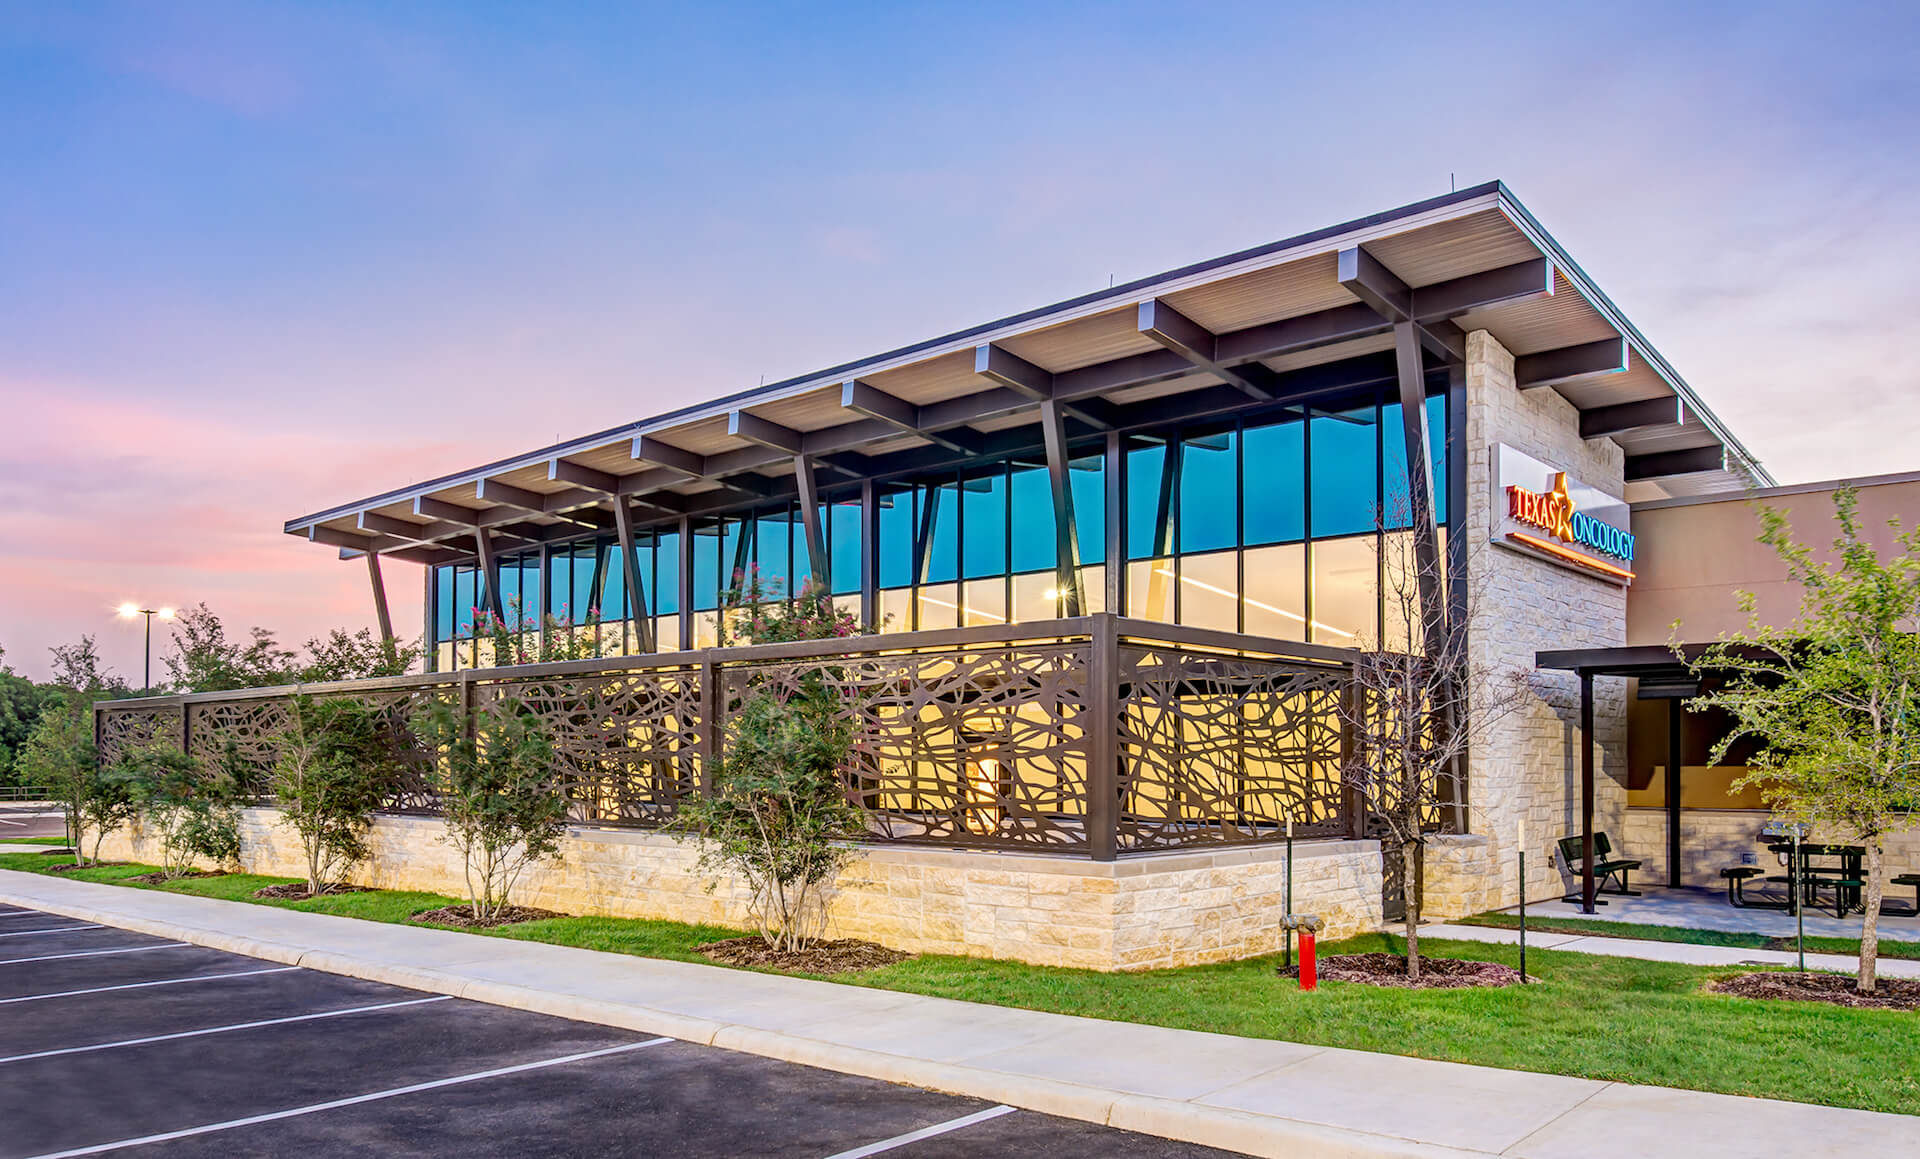 San Antonios Texas Oncology Opens Its Doors Cambridge Revolve Recycled Circuit Board Picture Frames 11 August 2017